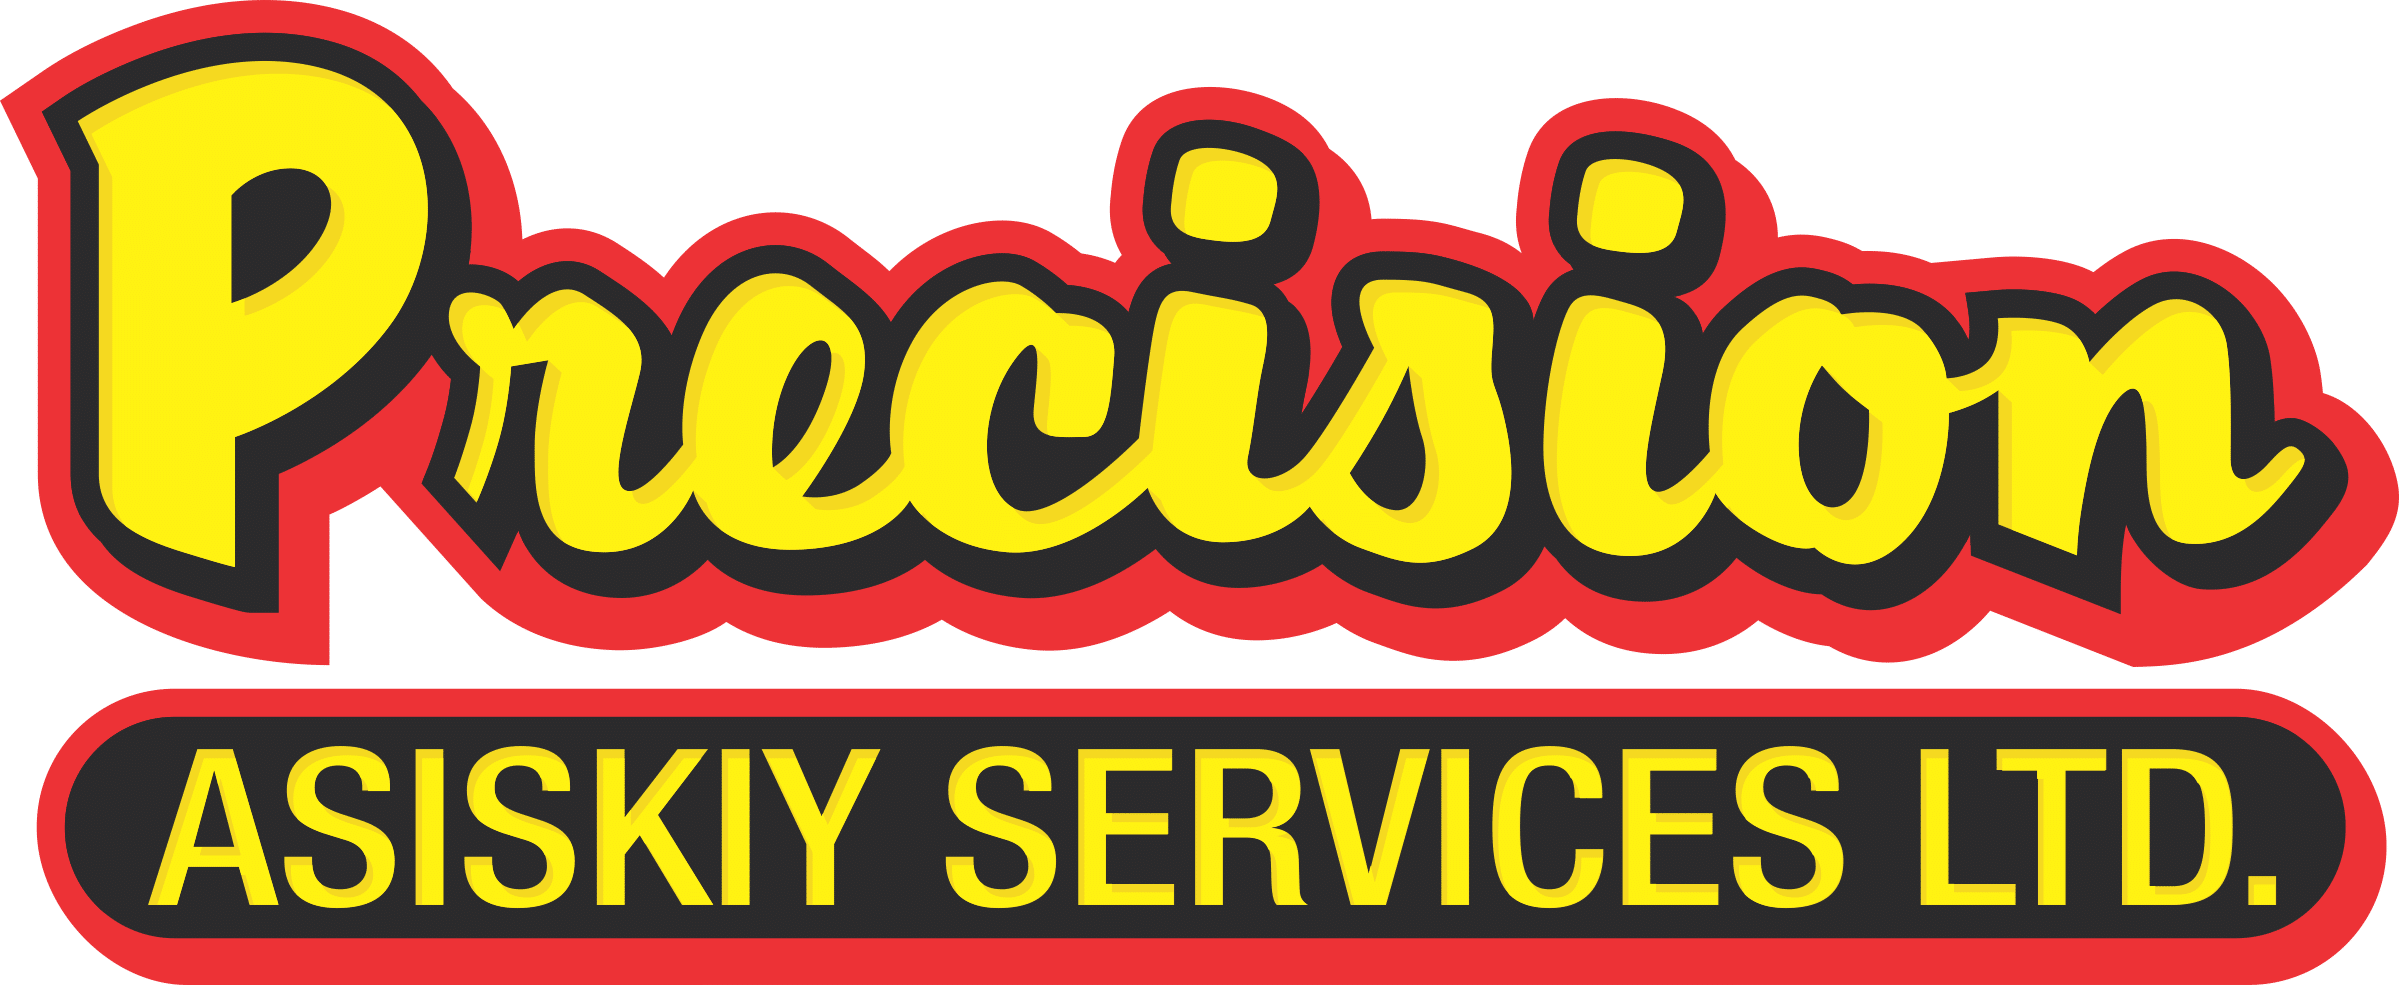 Precision Contractors | Earthworks | Precision Asiskiy Partnership to provide earthwork services for oilfield construction, reclamation, and civil projects | Precision-Asiskiy-Services_Logo-Jan2021